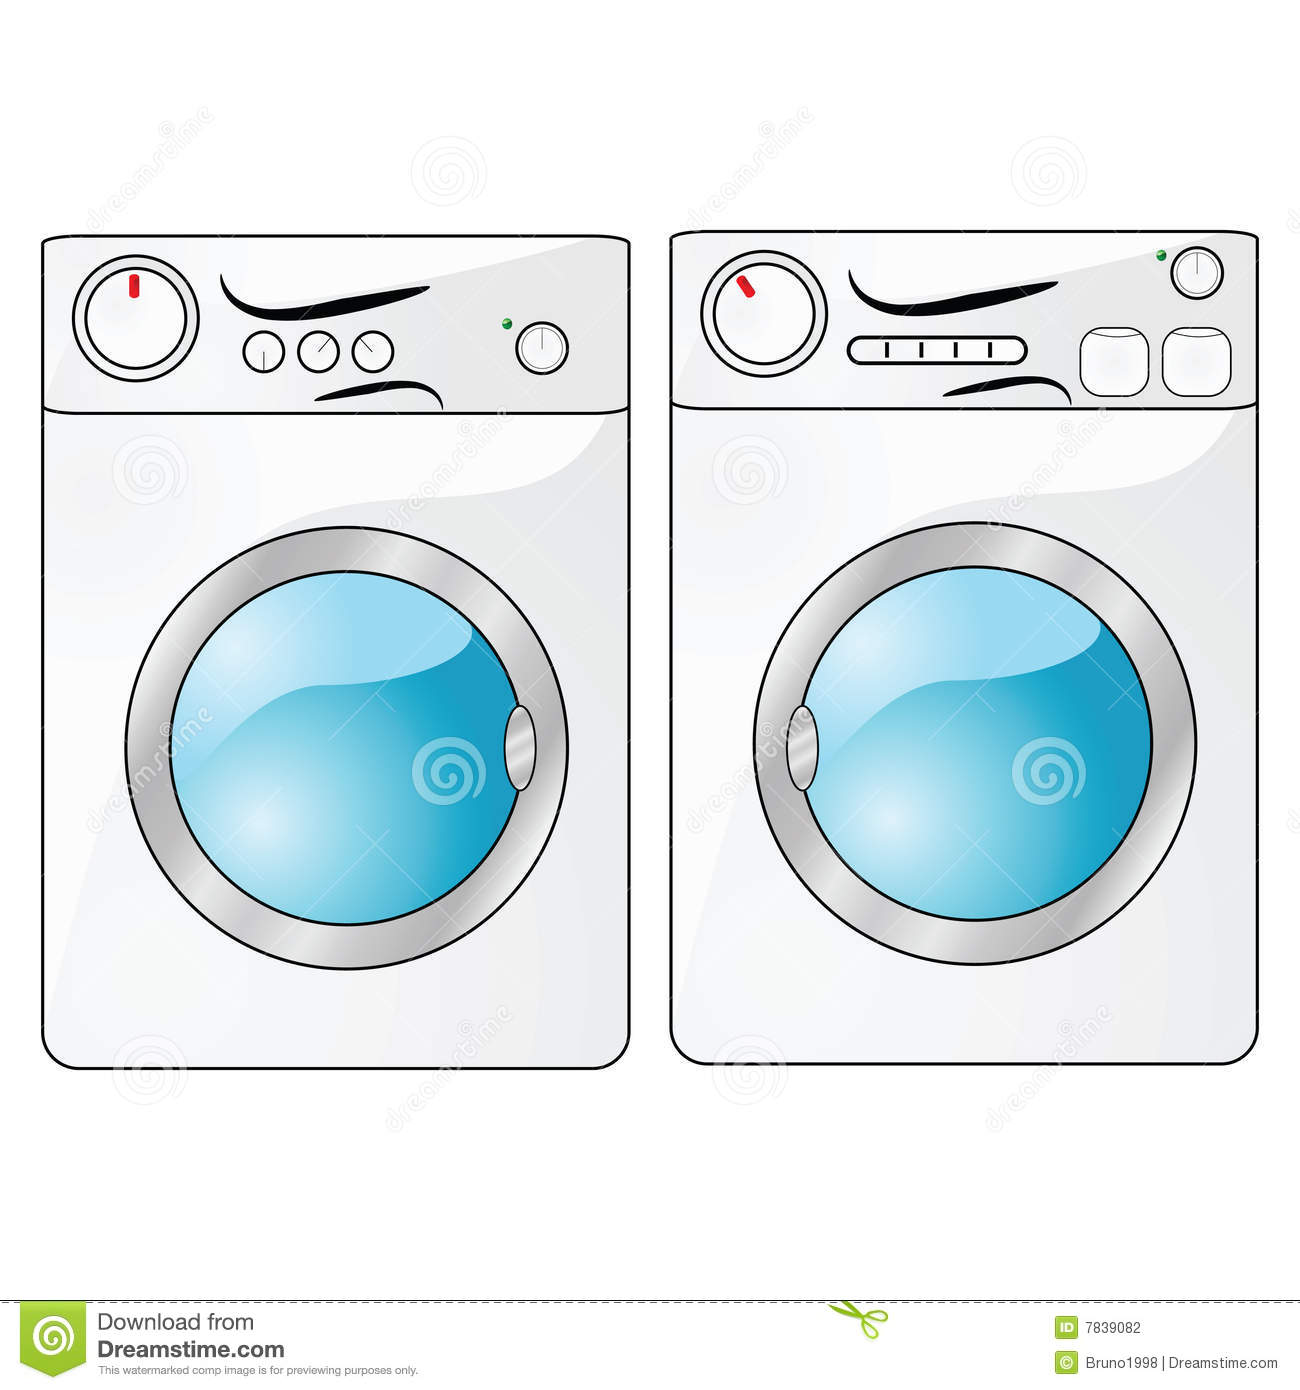 ... (20) Gallery Images For Washing Machine And Dryer Clip Art